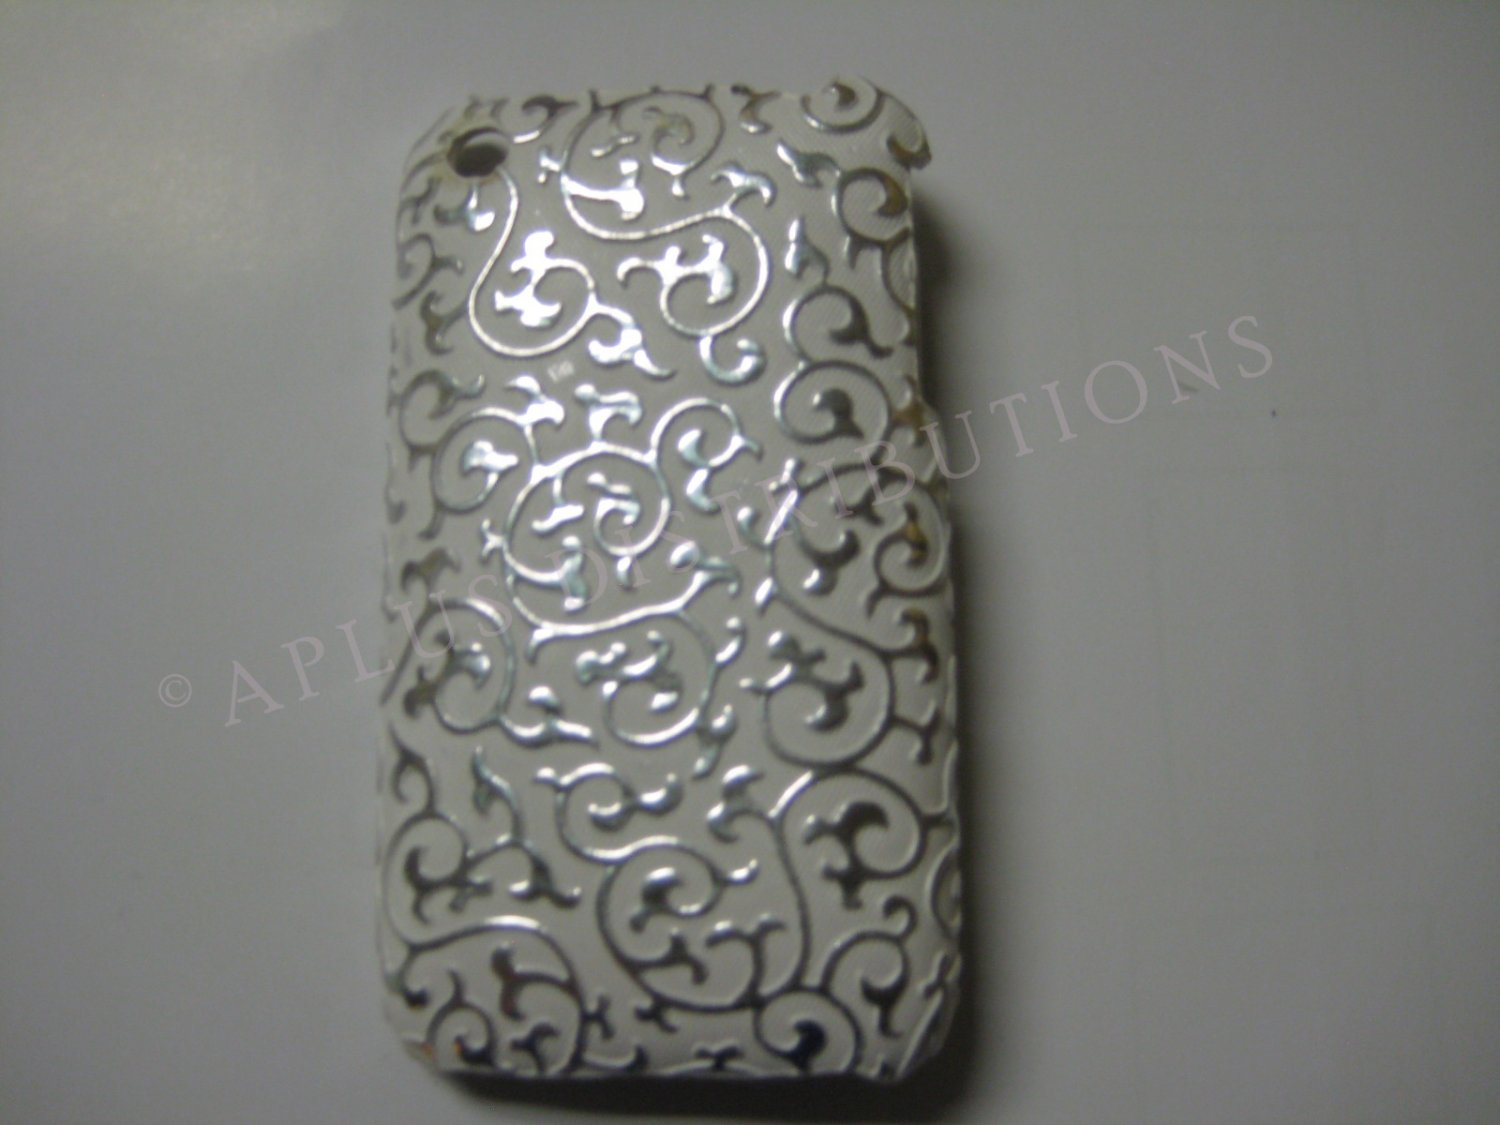 New Silver Princess Swirl Design Hard Protective Cover For iPhone 3G 3GS - (0025)